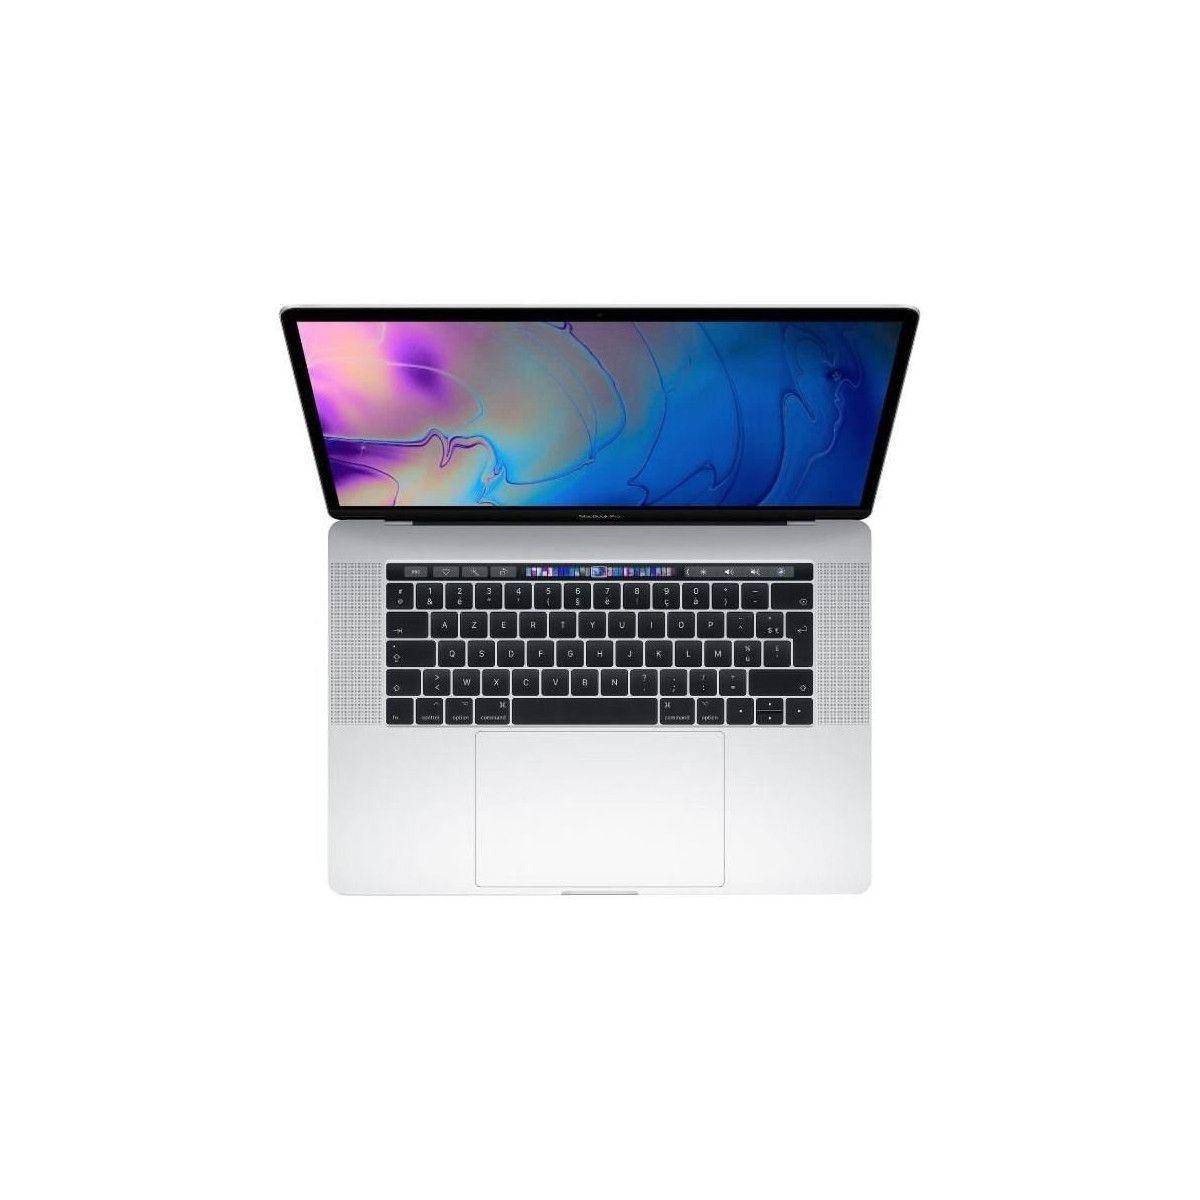 APPLE MacBook Pro MR962FN/A - 15,4 pouces Retina avec Touch Bar - Intel Core i7 - RAM 16Go - Stockage 256Go - Argent